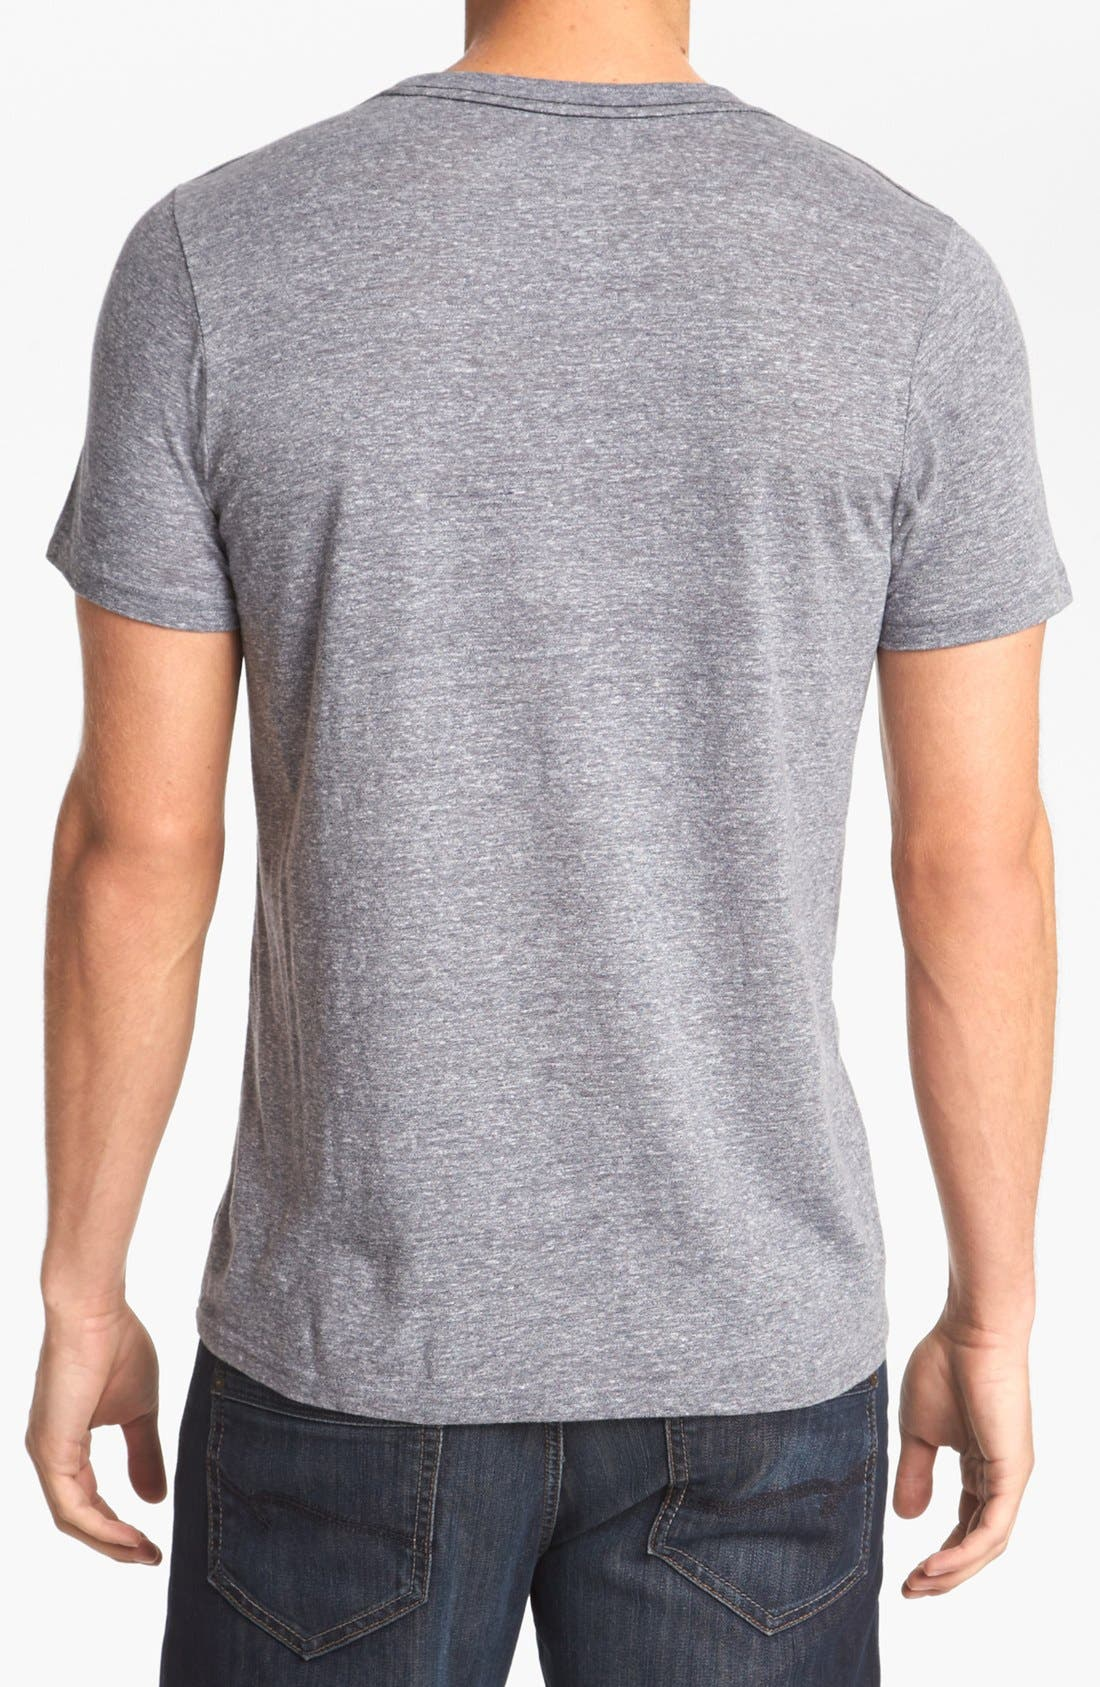 Alternate Image 2  - Hurley 'Stamped Out' T-Shirt